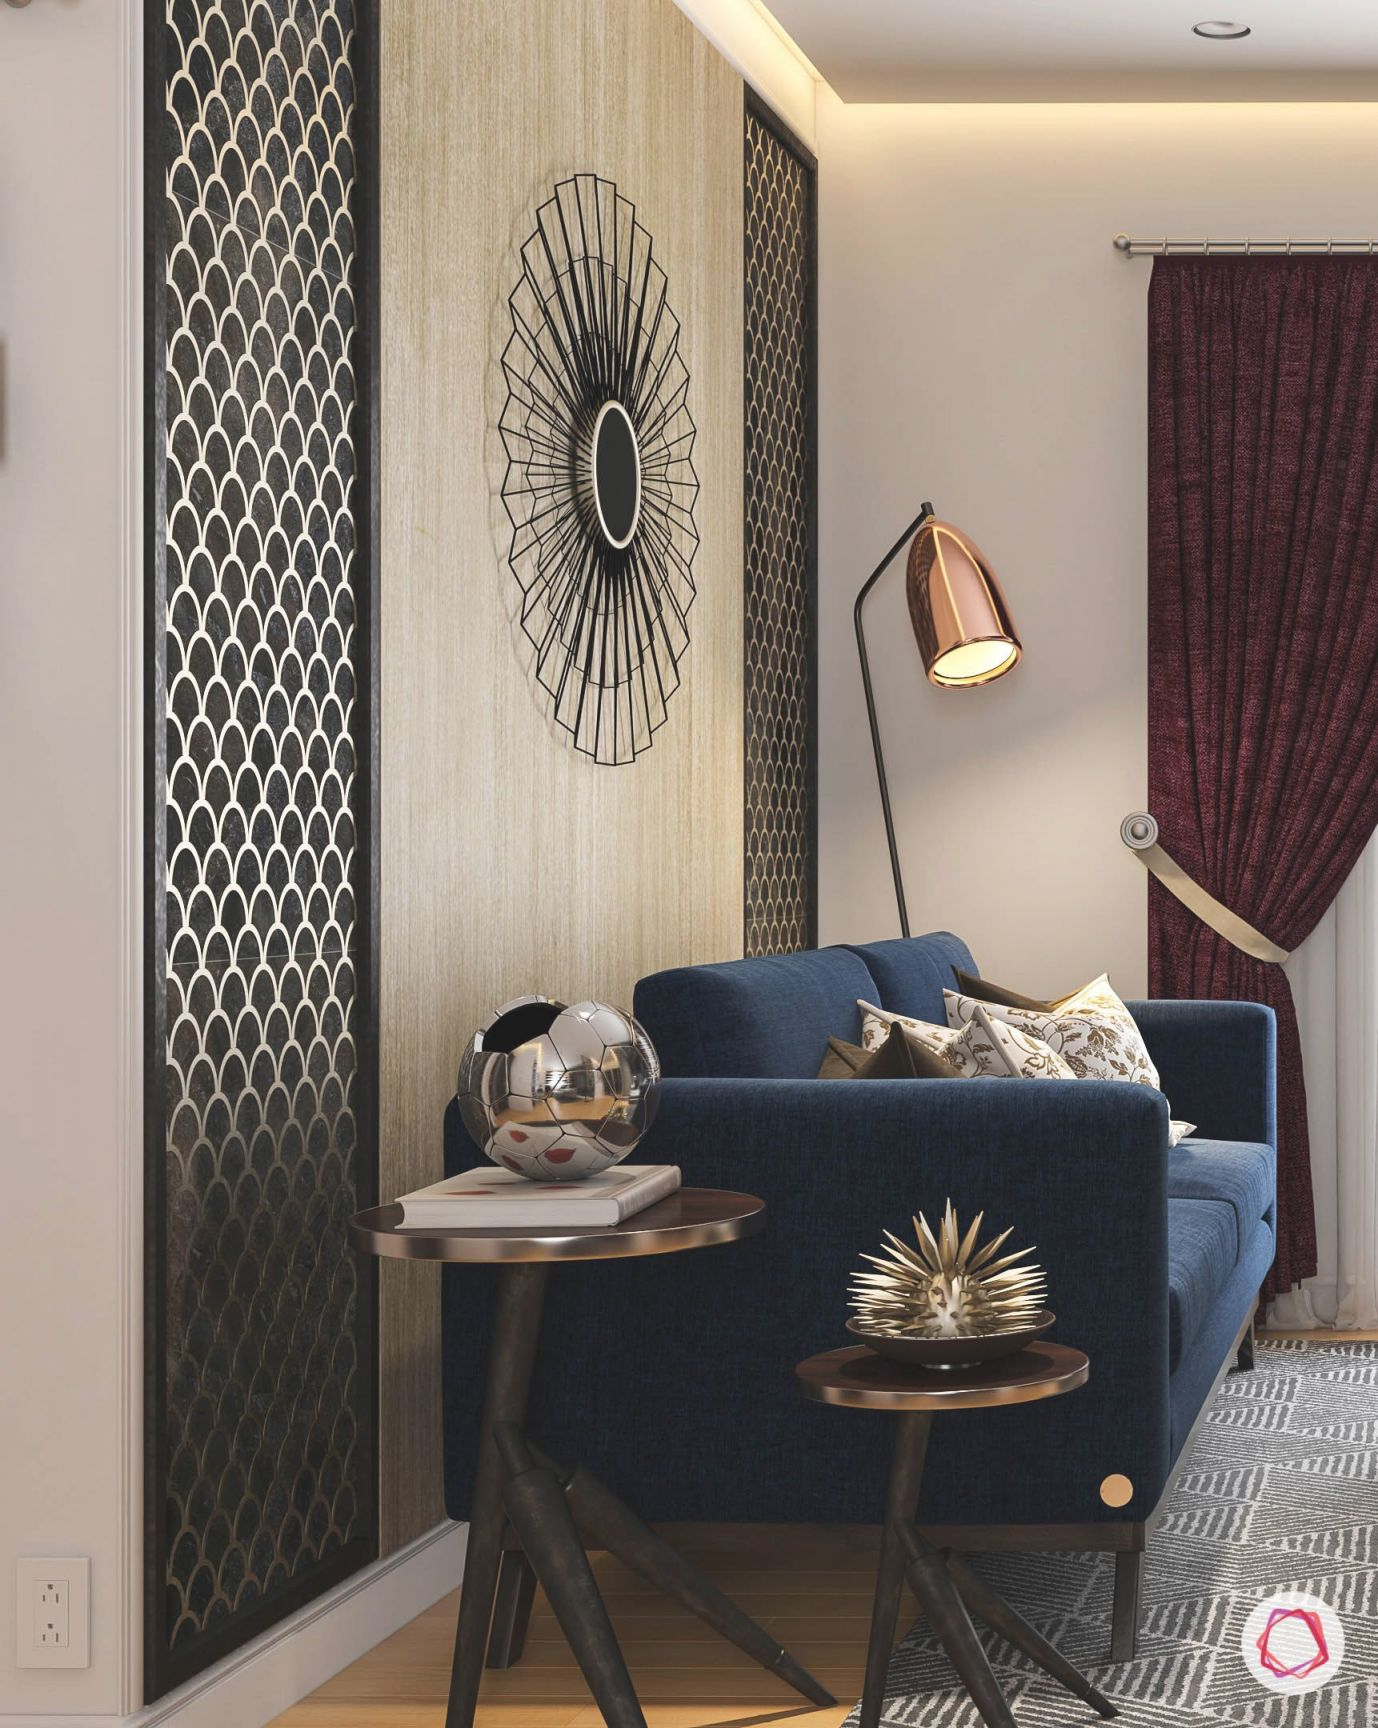 Metallic Accents Always Act As Wonderful Decor Items At Home intended for Decorative Items For Living Room